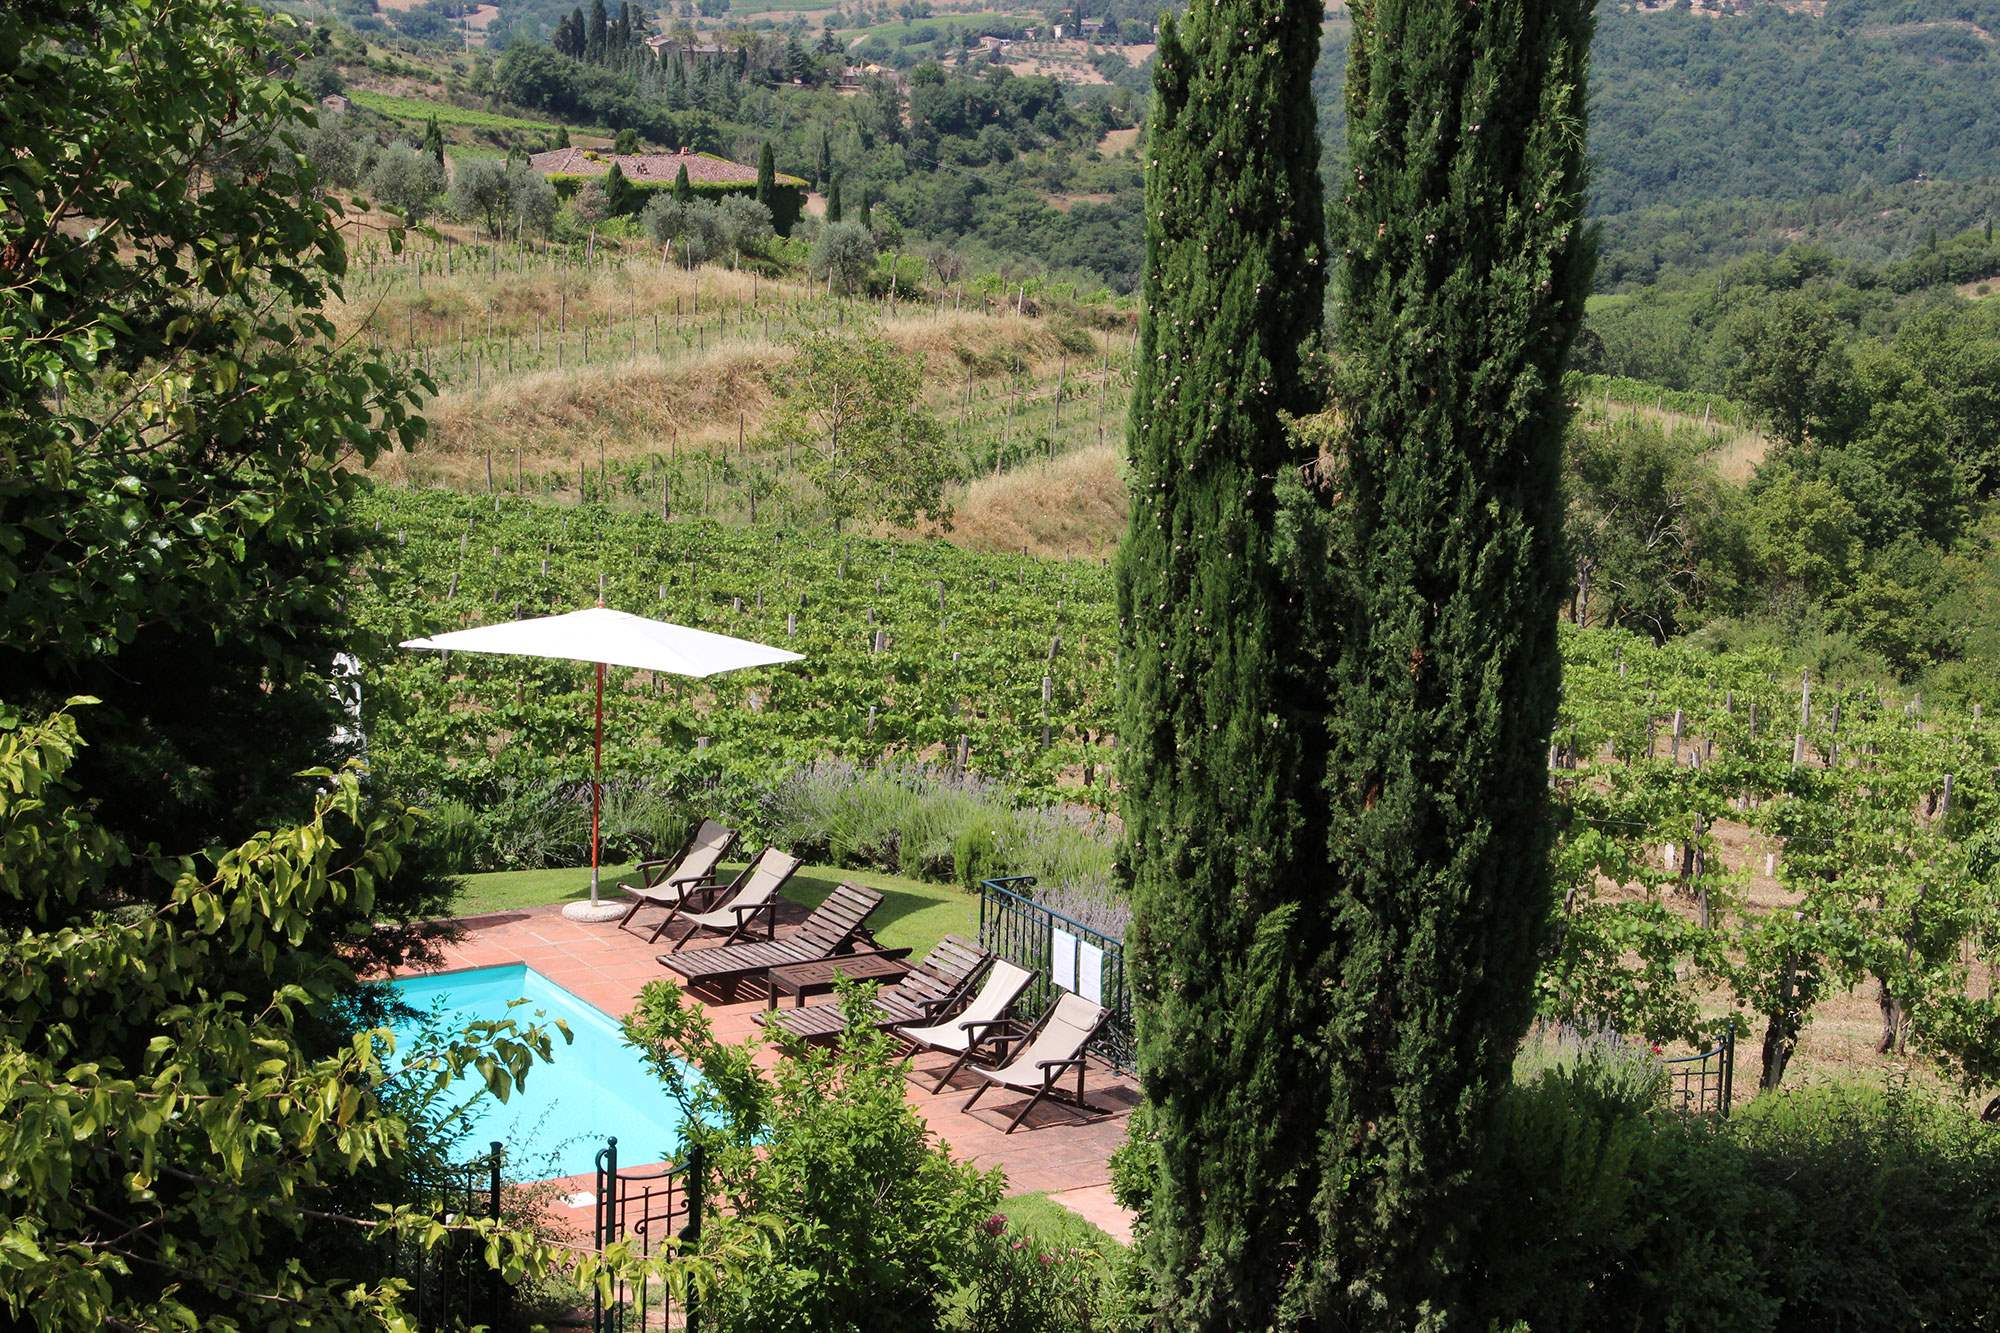 Casa Ferruzzi 2, 3 bedroom apartment in Chianti & Countryside, Tuscany Photo #2